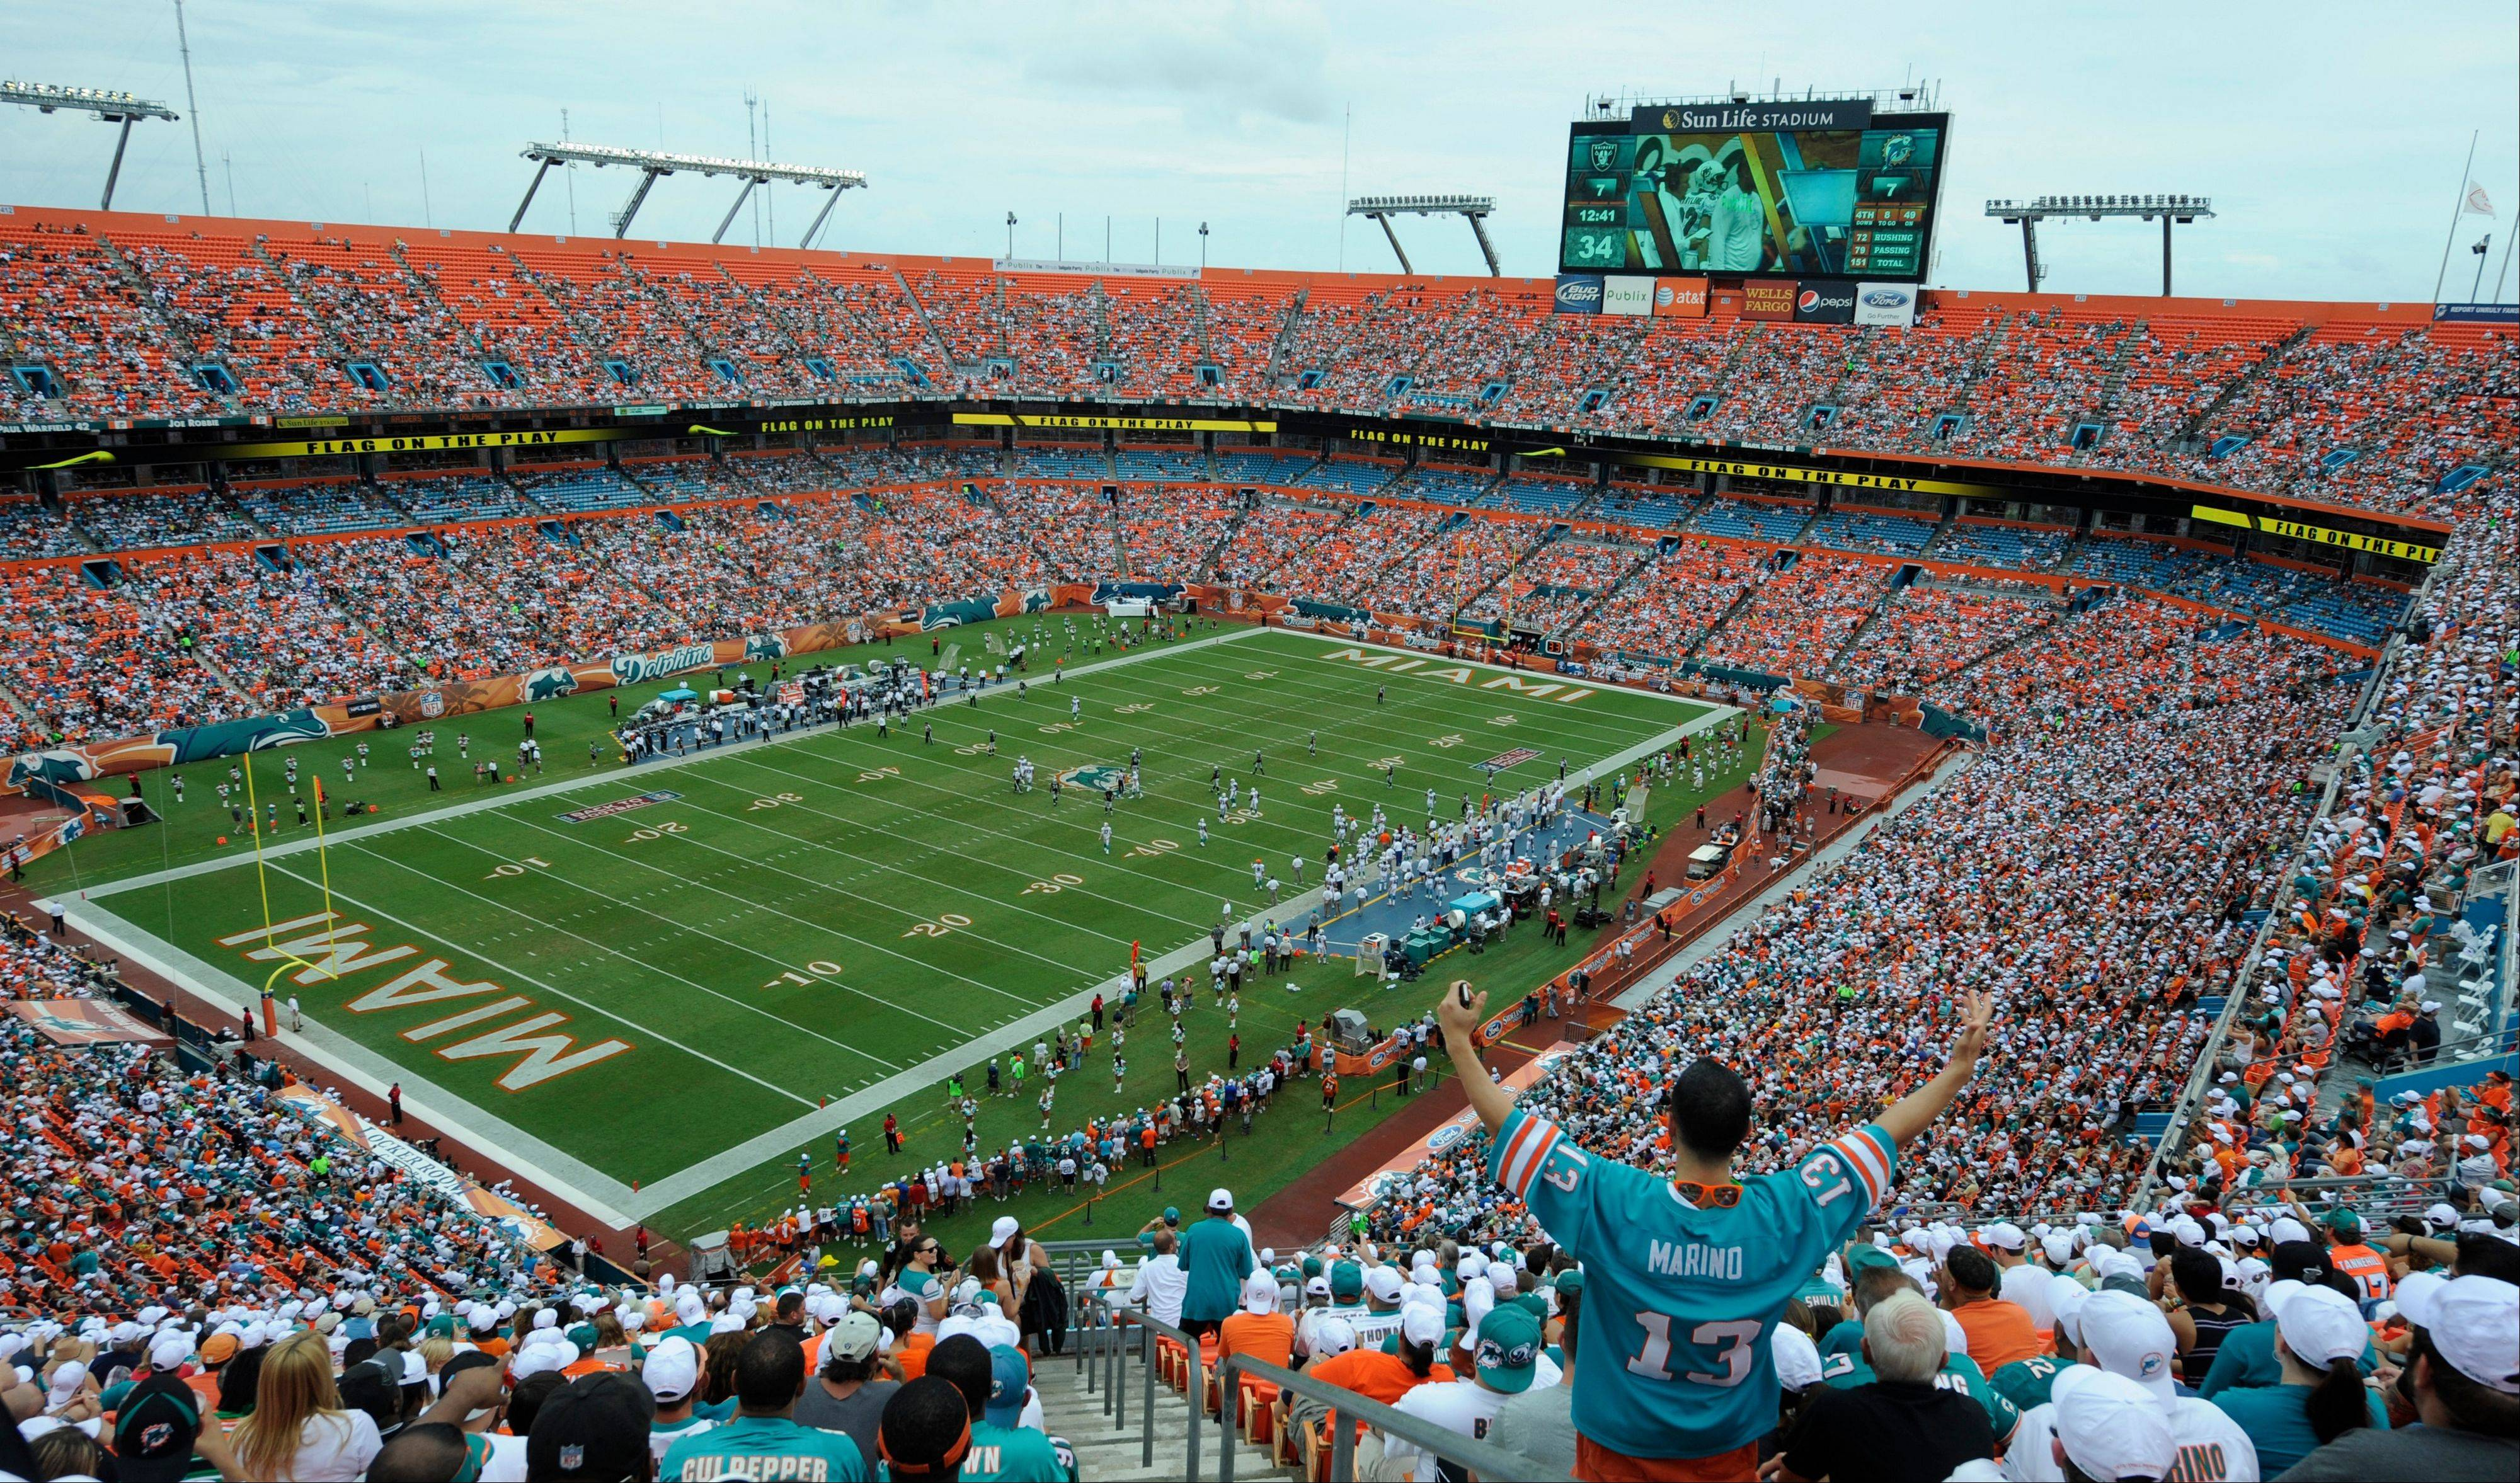 This Sept. 16, 2012 file photo shows a general view of Sun Life Stadium during the first half of an NFL football game between the Miami Dolphins and Oakland Raiders in Miami. NFL owners will vote on the sites of the 50th and 51st Super Bowls on Tuesday, May 21, 2013 at their spring meetings. The San Francisco area, where a new stadium is being built in Santa Clara, and South Florida are competing for the the 50th edition, to be held in February 2016.